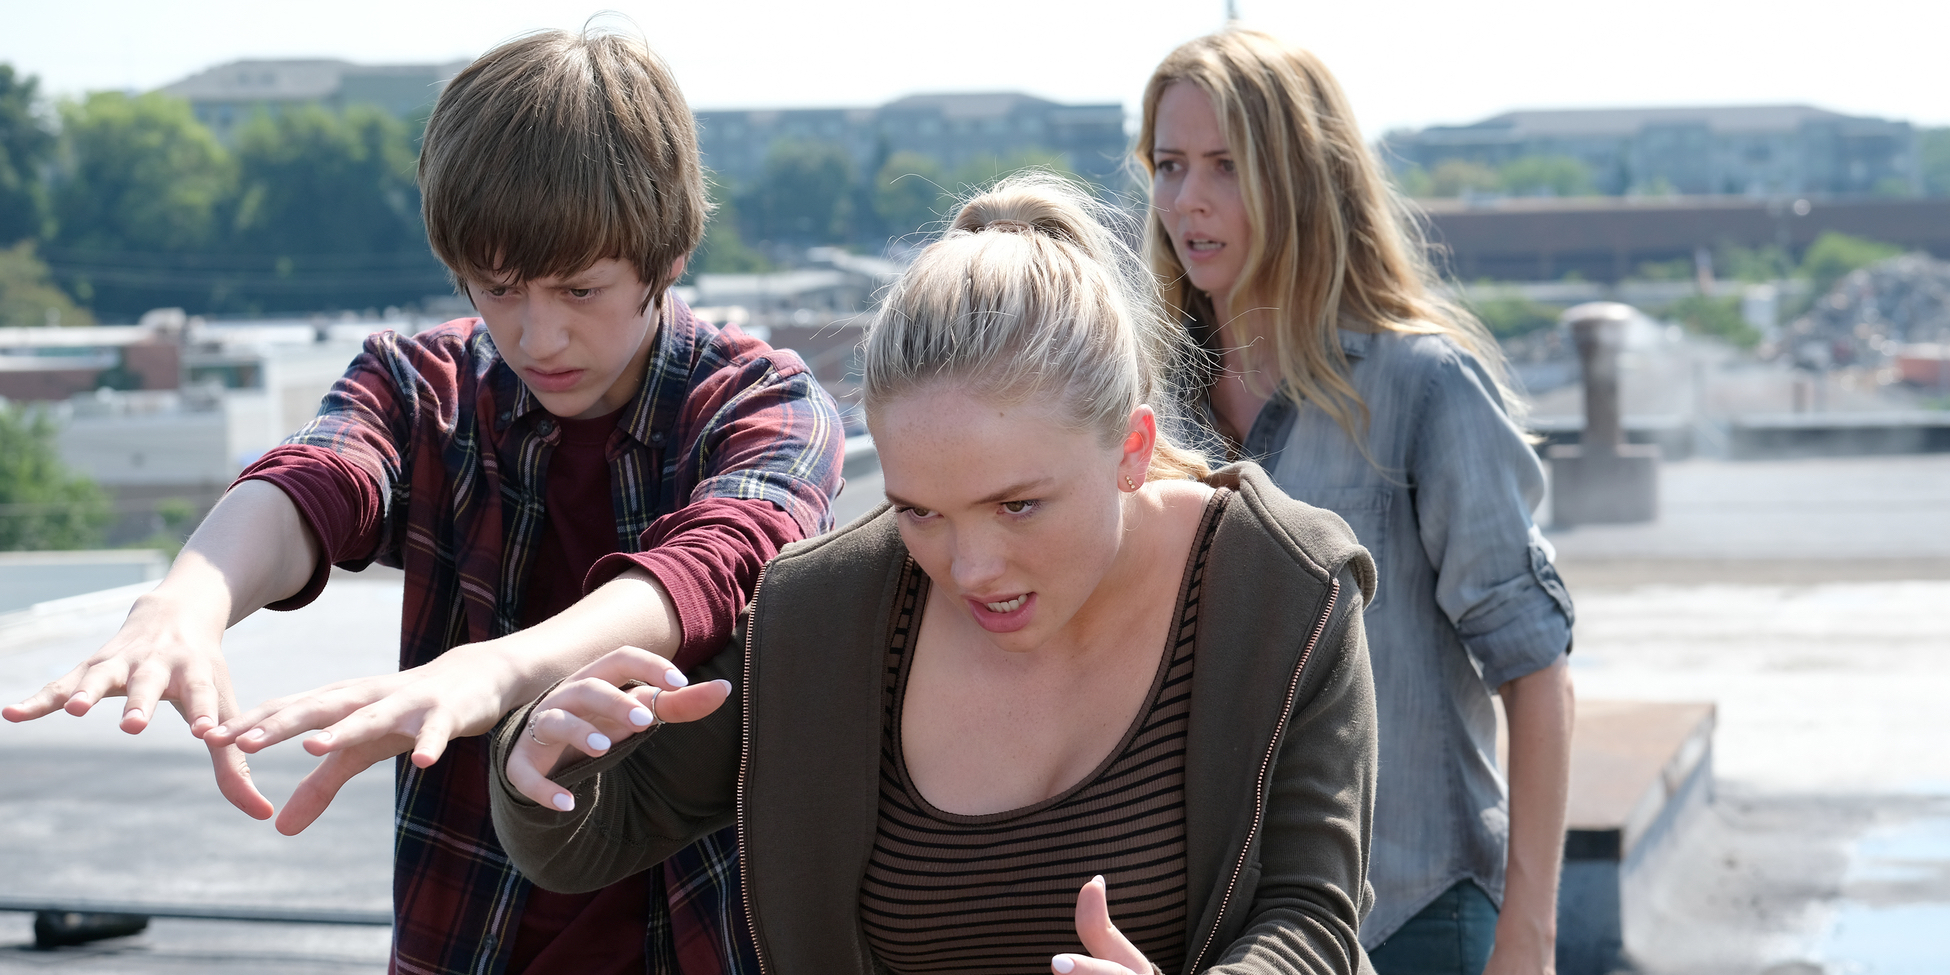 Percy Hynes White Amy Acker and Natalie Alyn Lind in The Gifted